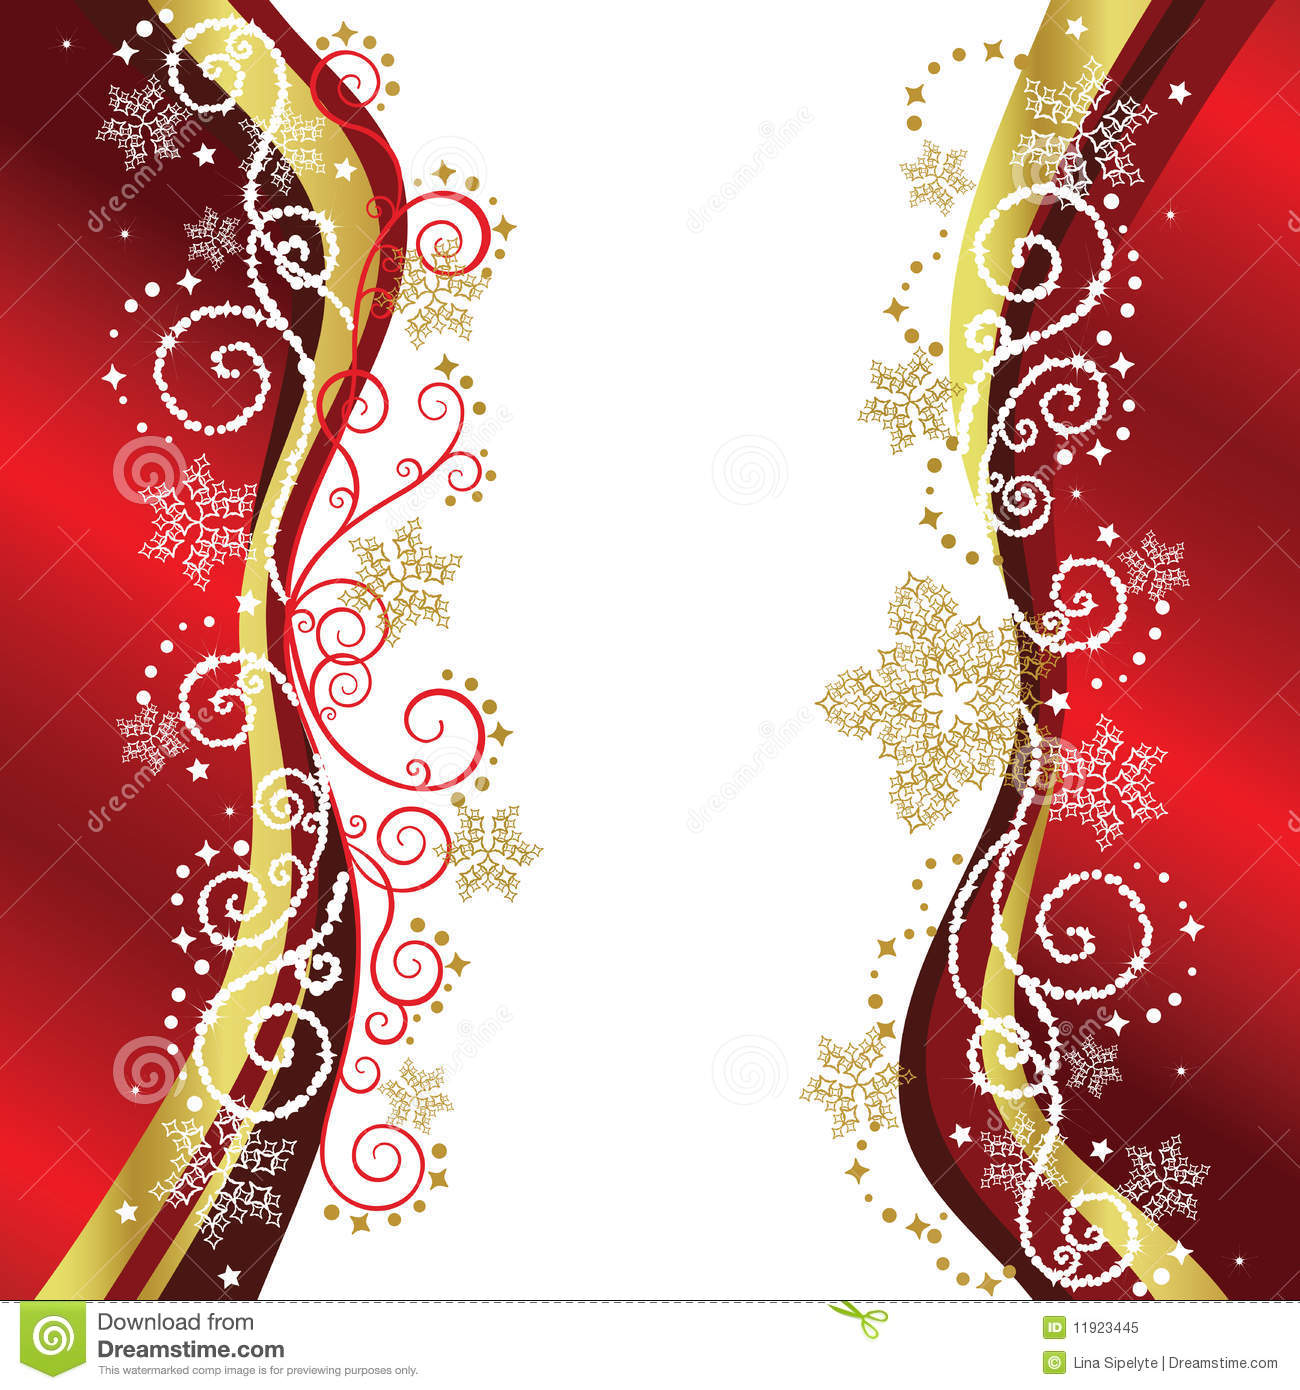 red gold christmas border designs royalty free stock